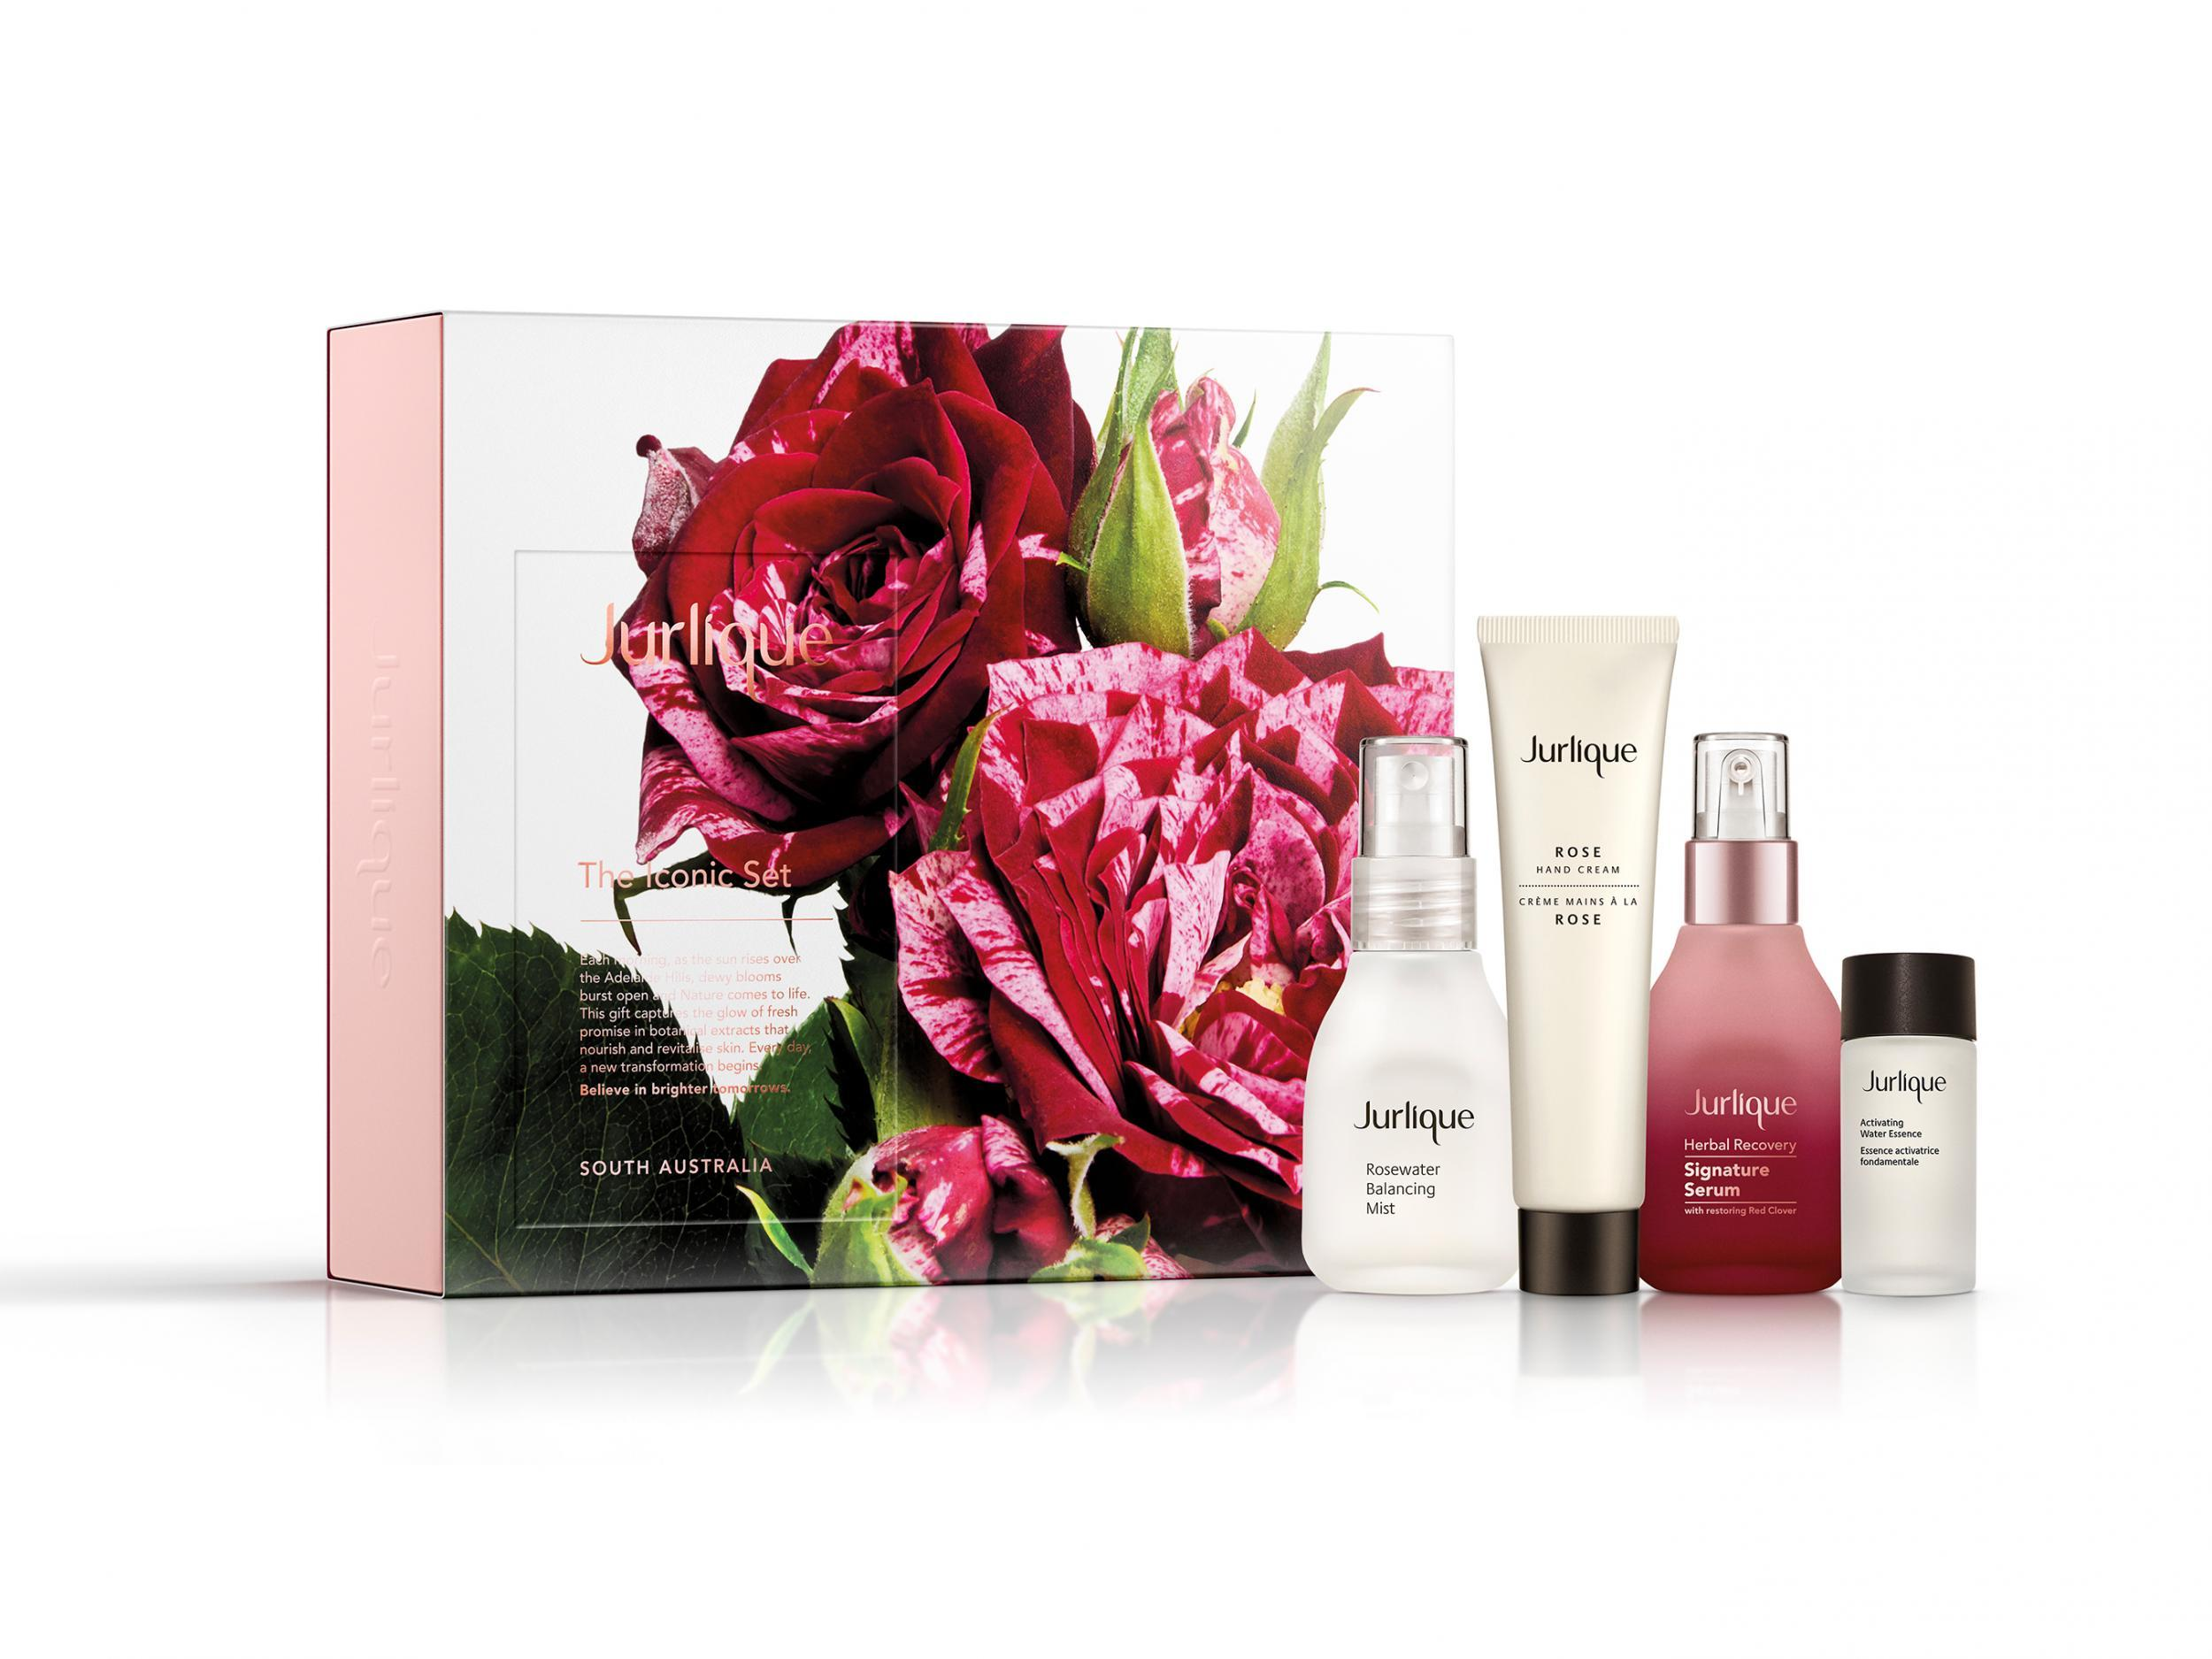 22 Best Luxury Beauty Gifts Over 50 The Independent Barn Mom Trial Set Replenish Full Iconic Contains 4 Of Loved Signature Products From One Early Pioneers Natural Skincare Jurlique Was Launched By Husband And